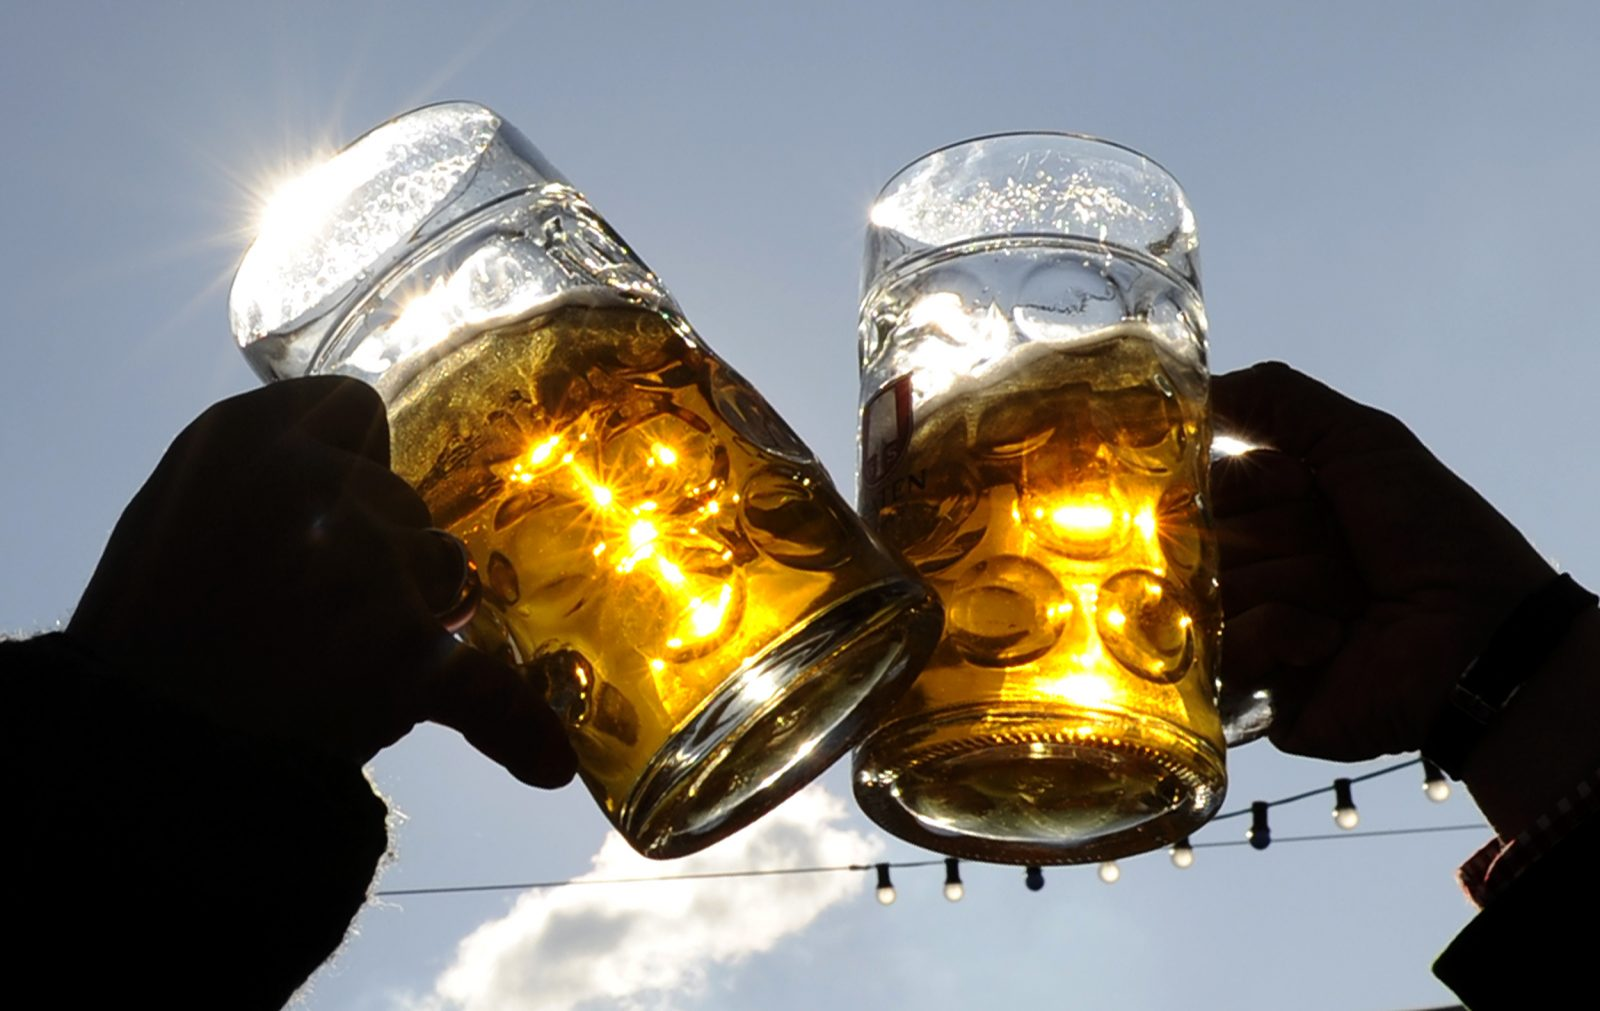 """Visitors toast each other on a sunny day during Oktoberfest in Munich, September 27, 2008. Millions of beer drinkers from around the world will come to the Bavarian capital Munich for the world's biggest and most famous beer festival, """"Oktoberfest"""", that runs until October 5."""